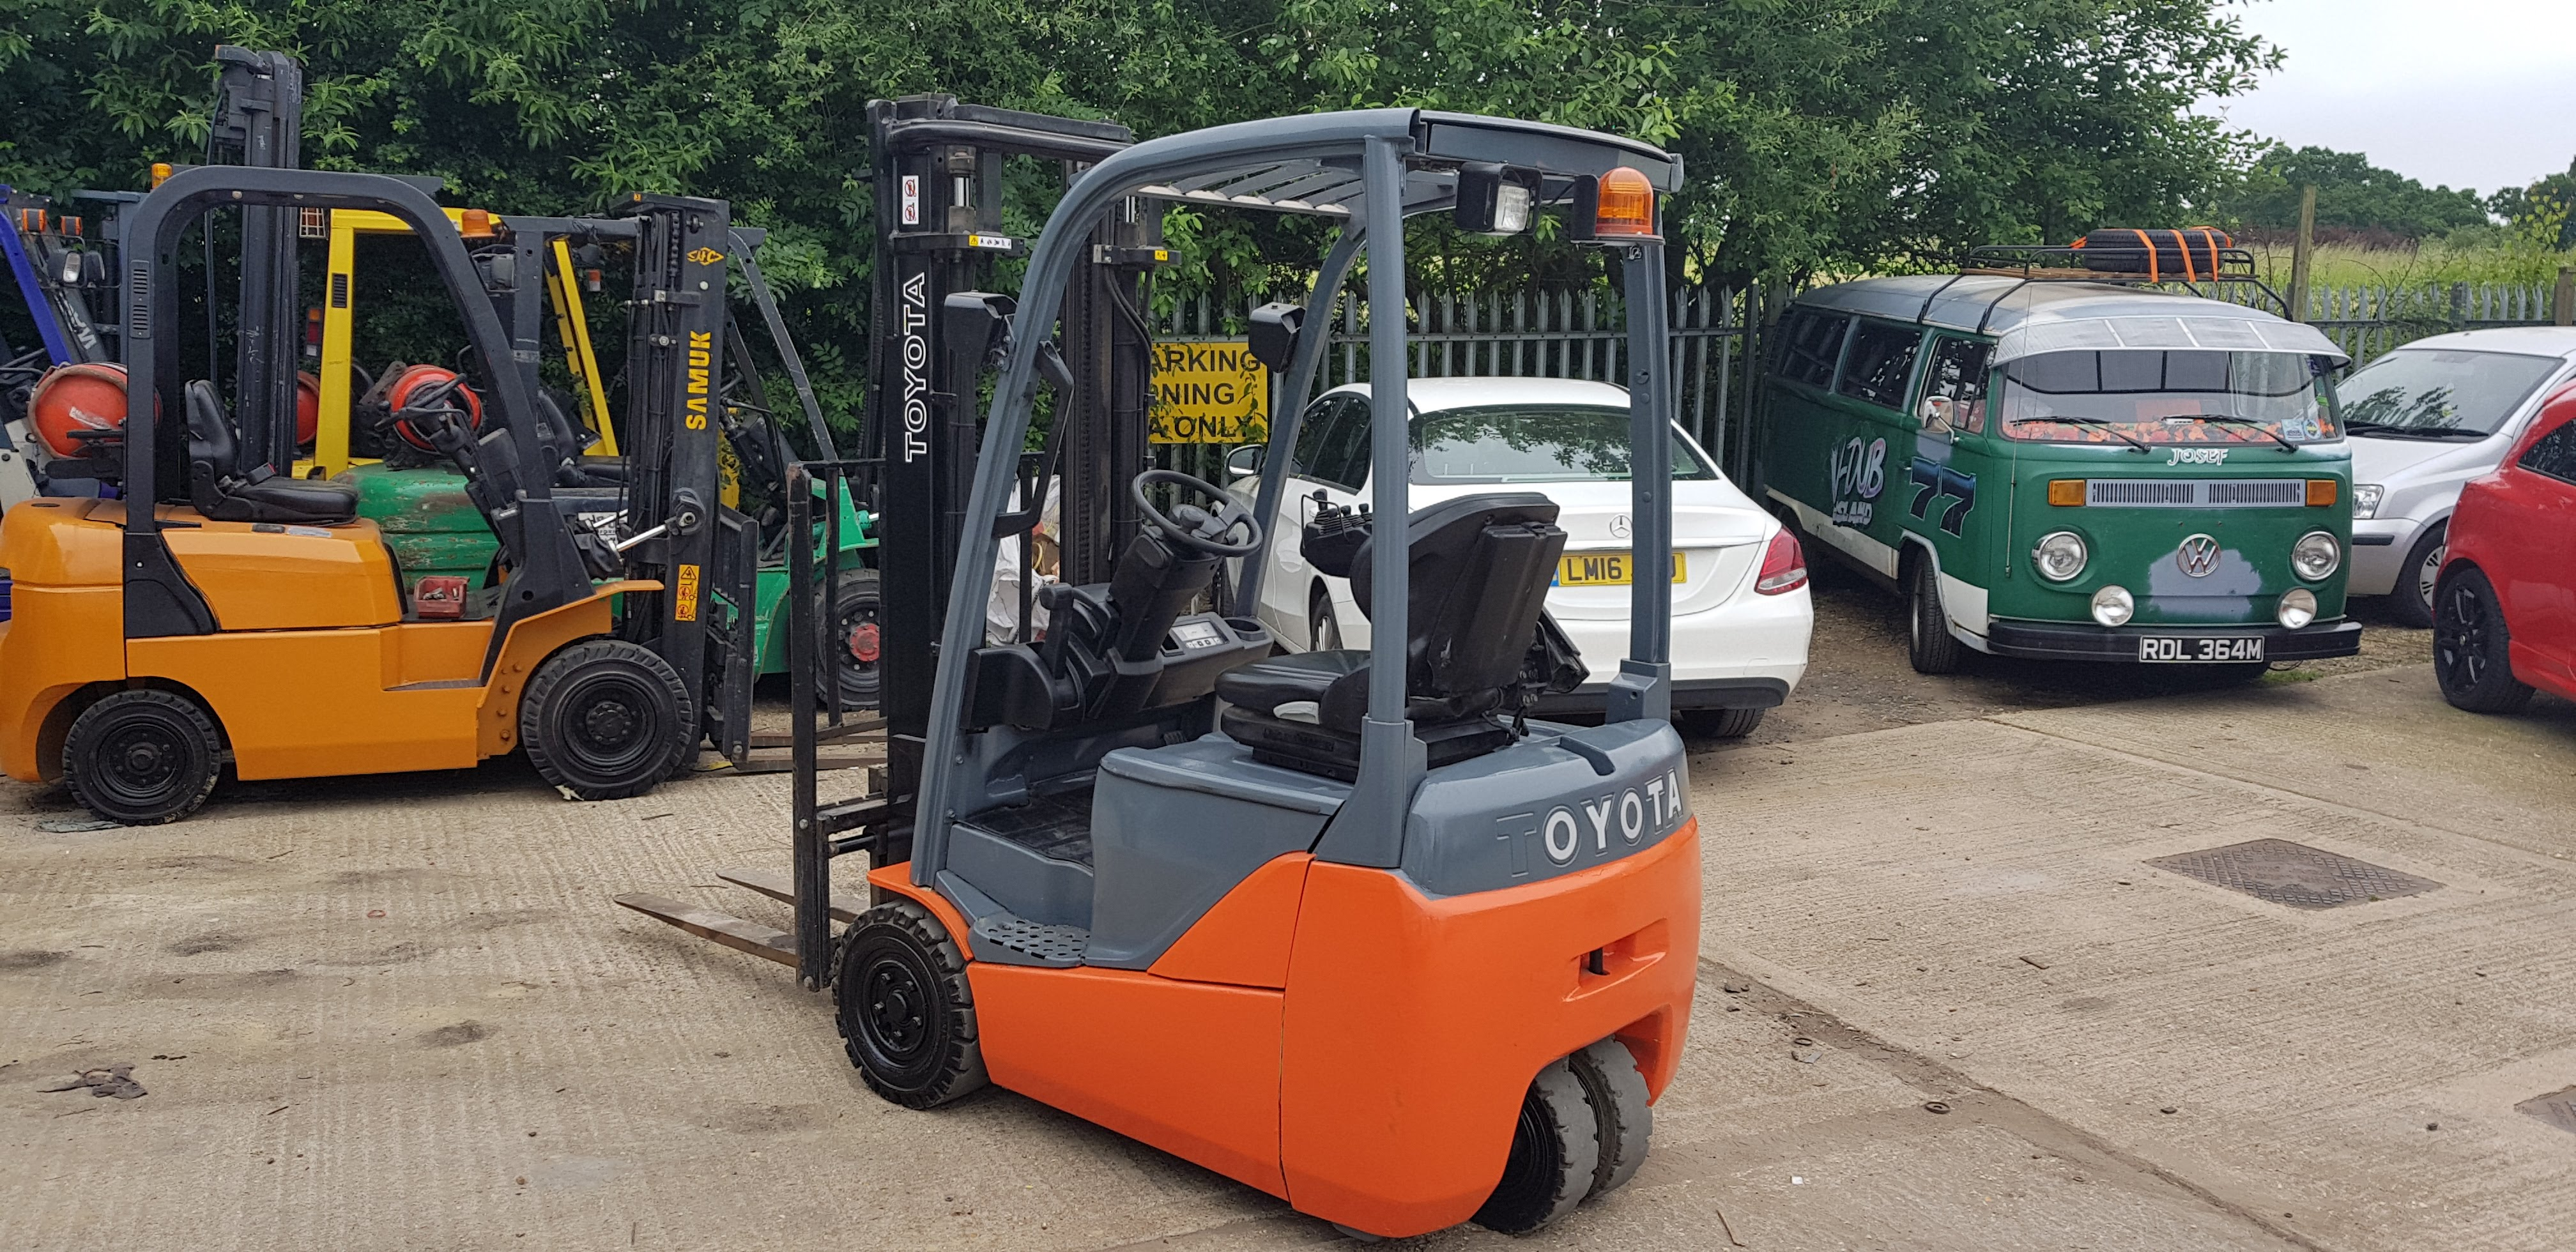 Toyota Electric Forklift 3 Wheel - FBET15